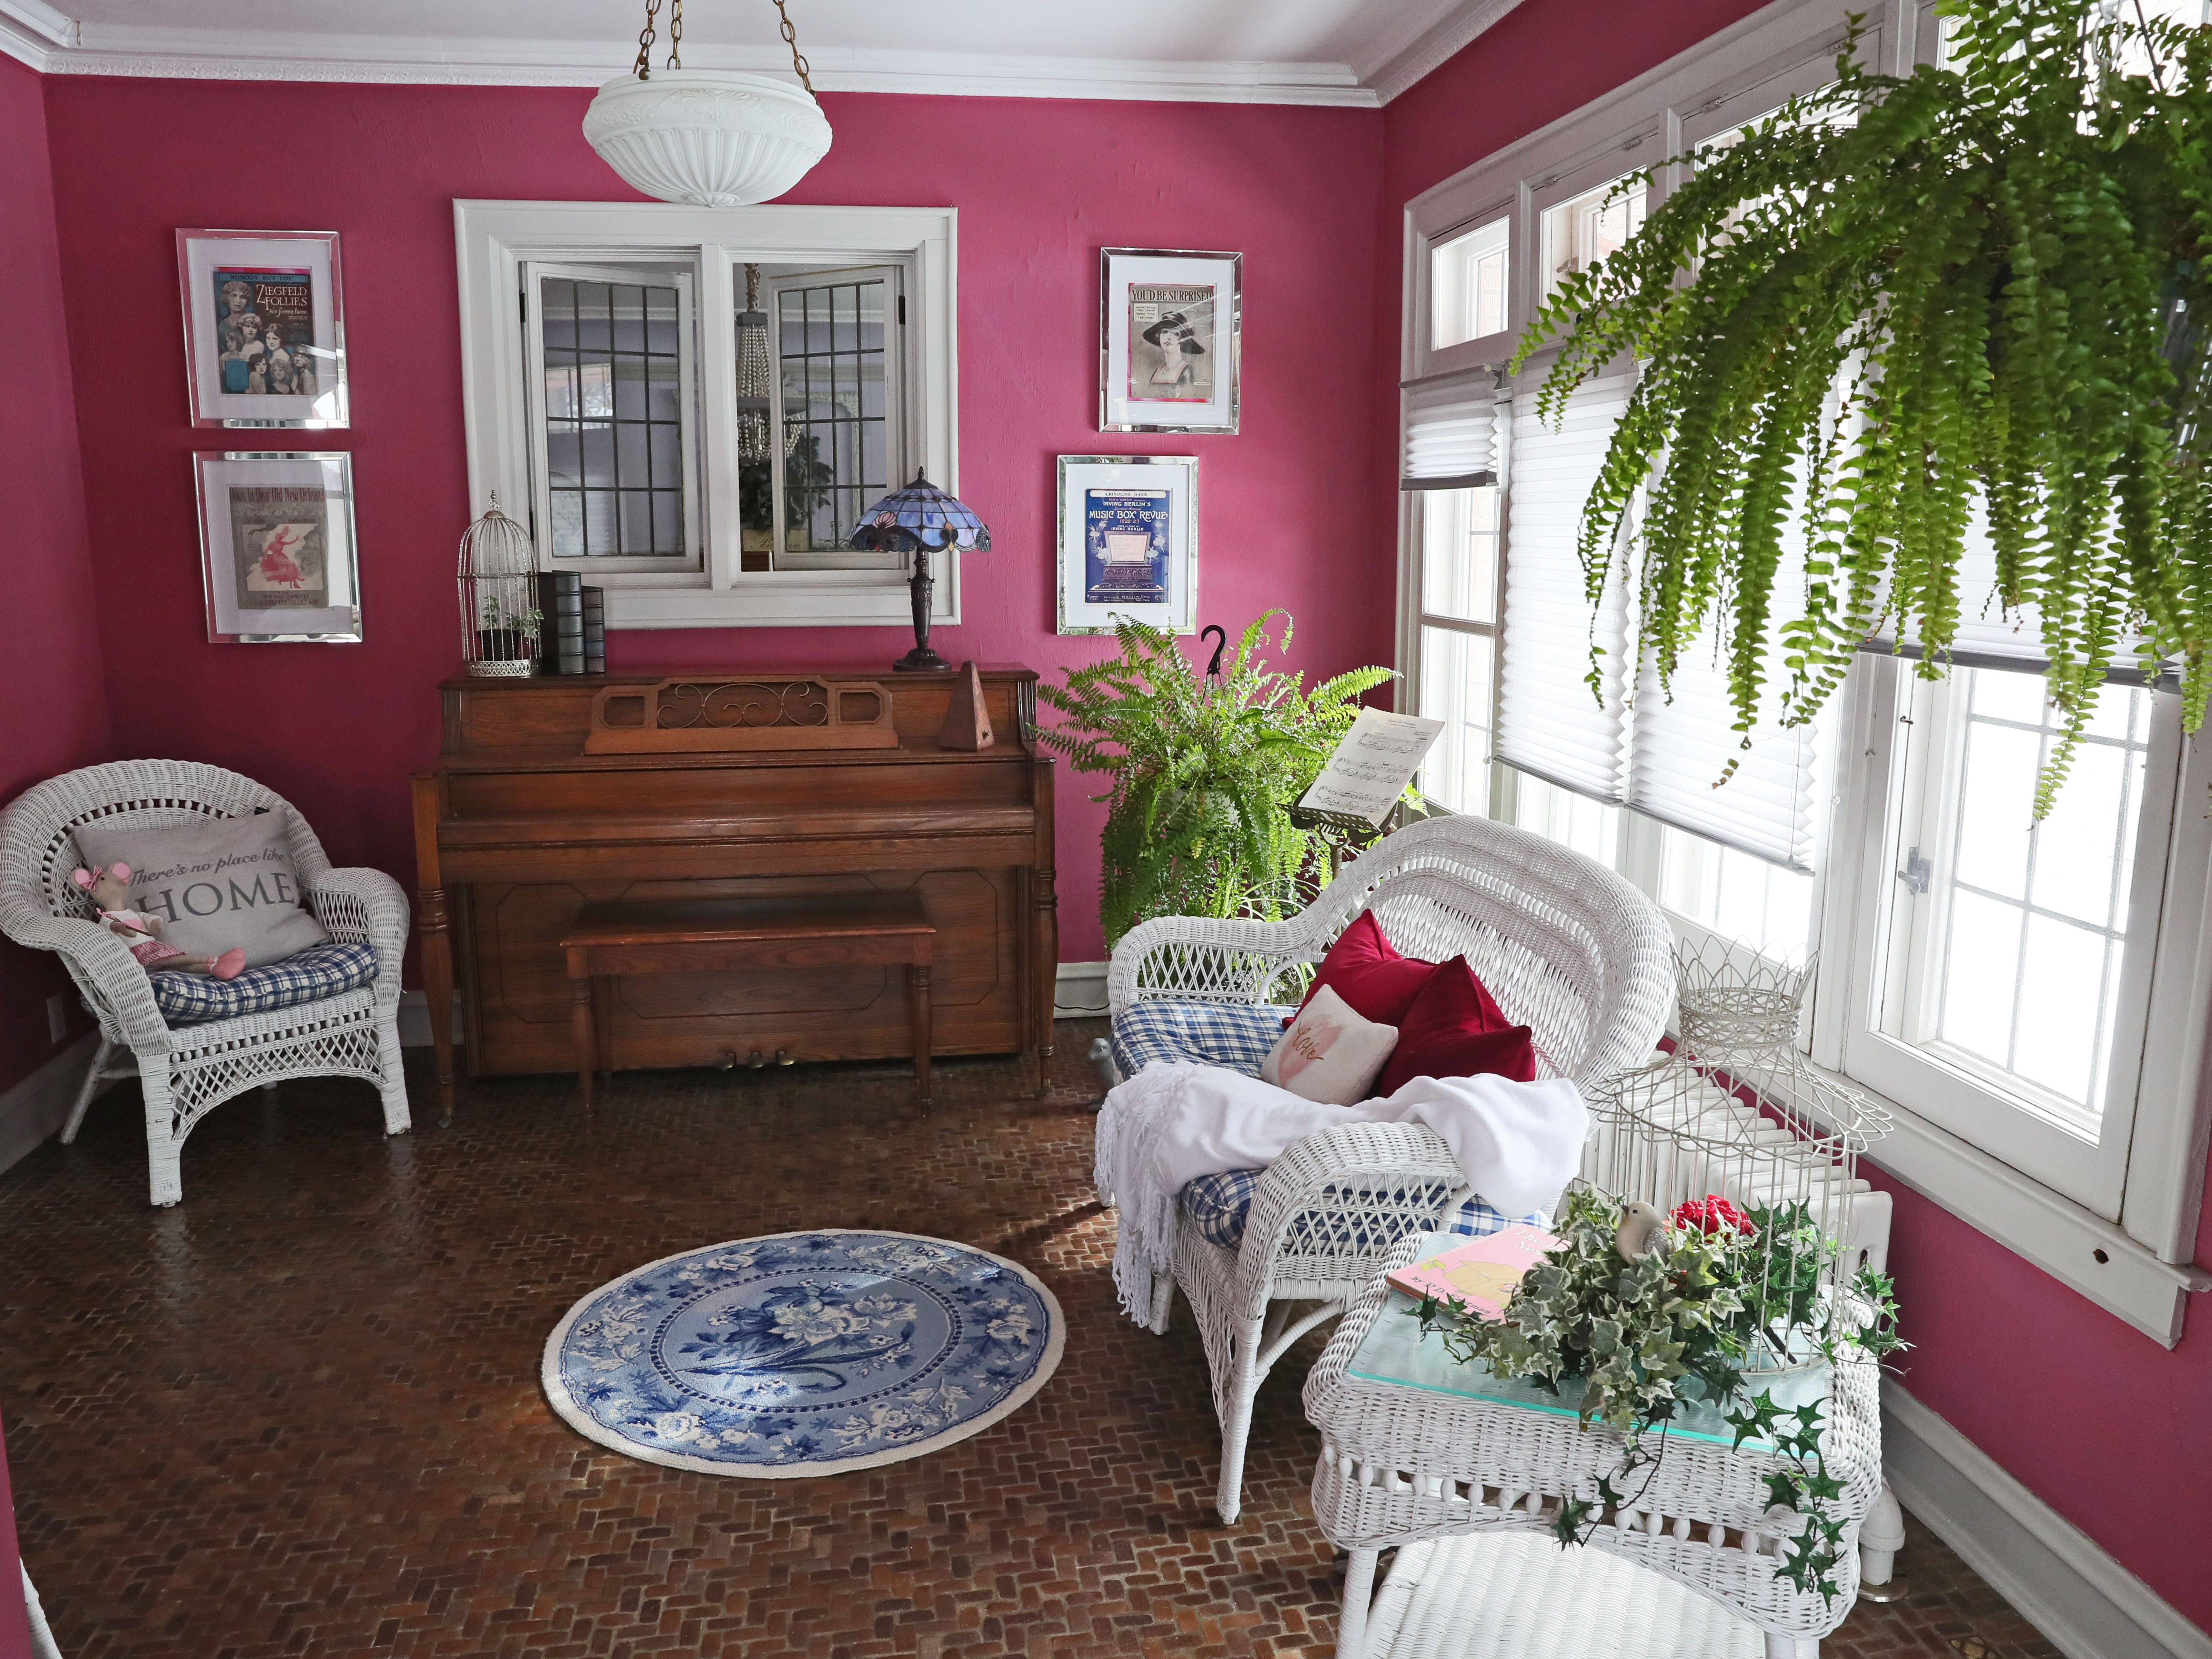 The sunroom is painted in the same rose color that she had used in a previous house.